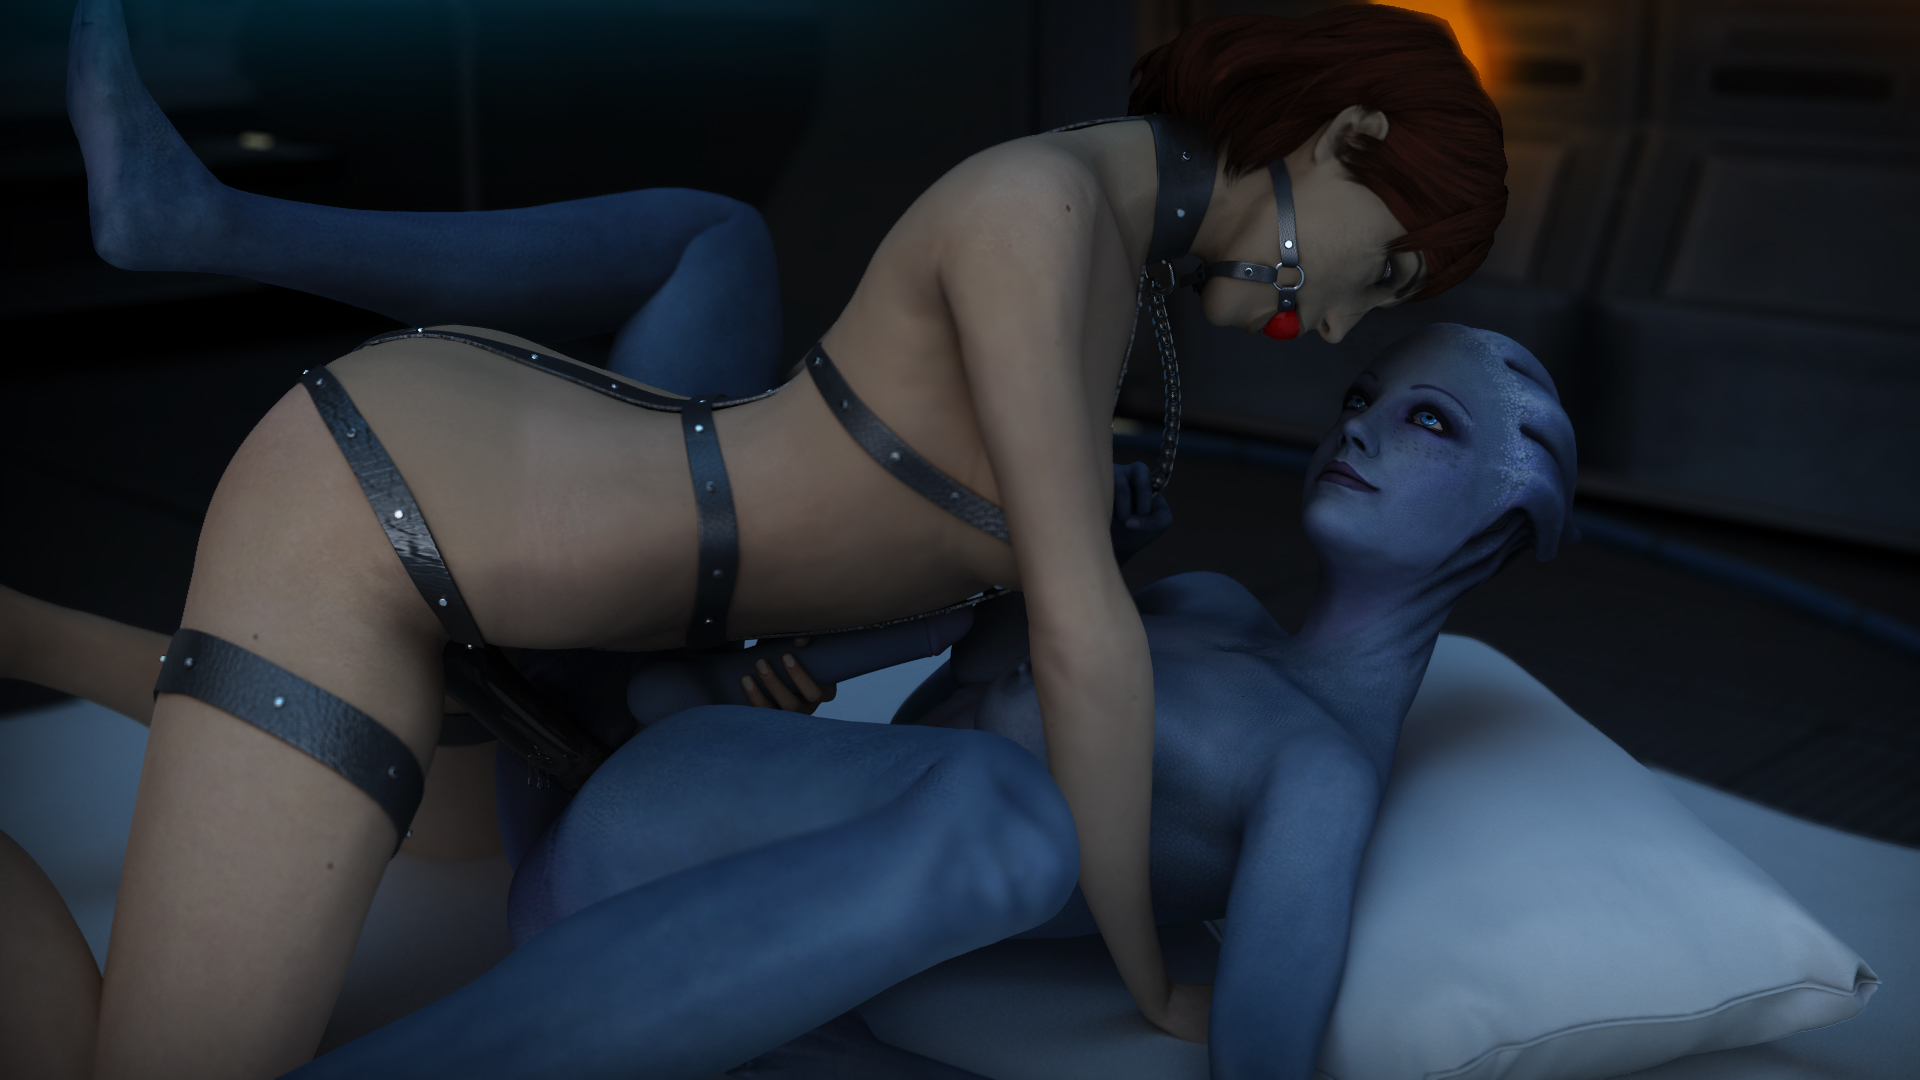 Mass effect liara bondage pic naked movies